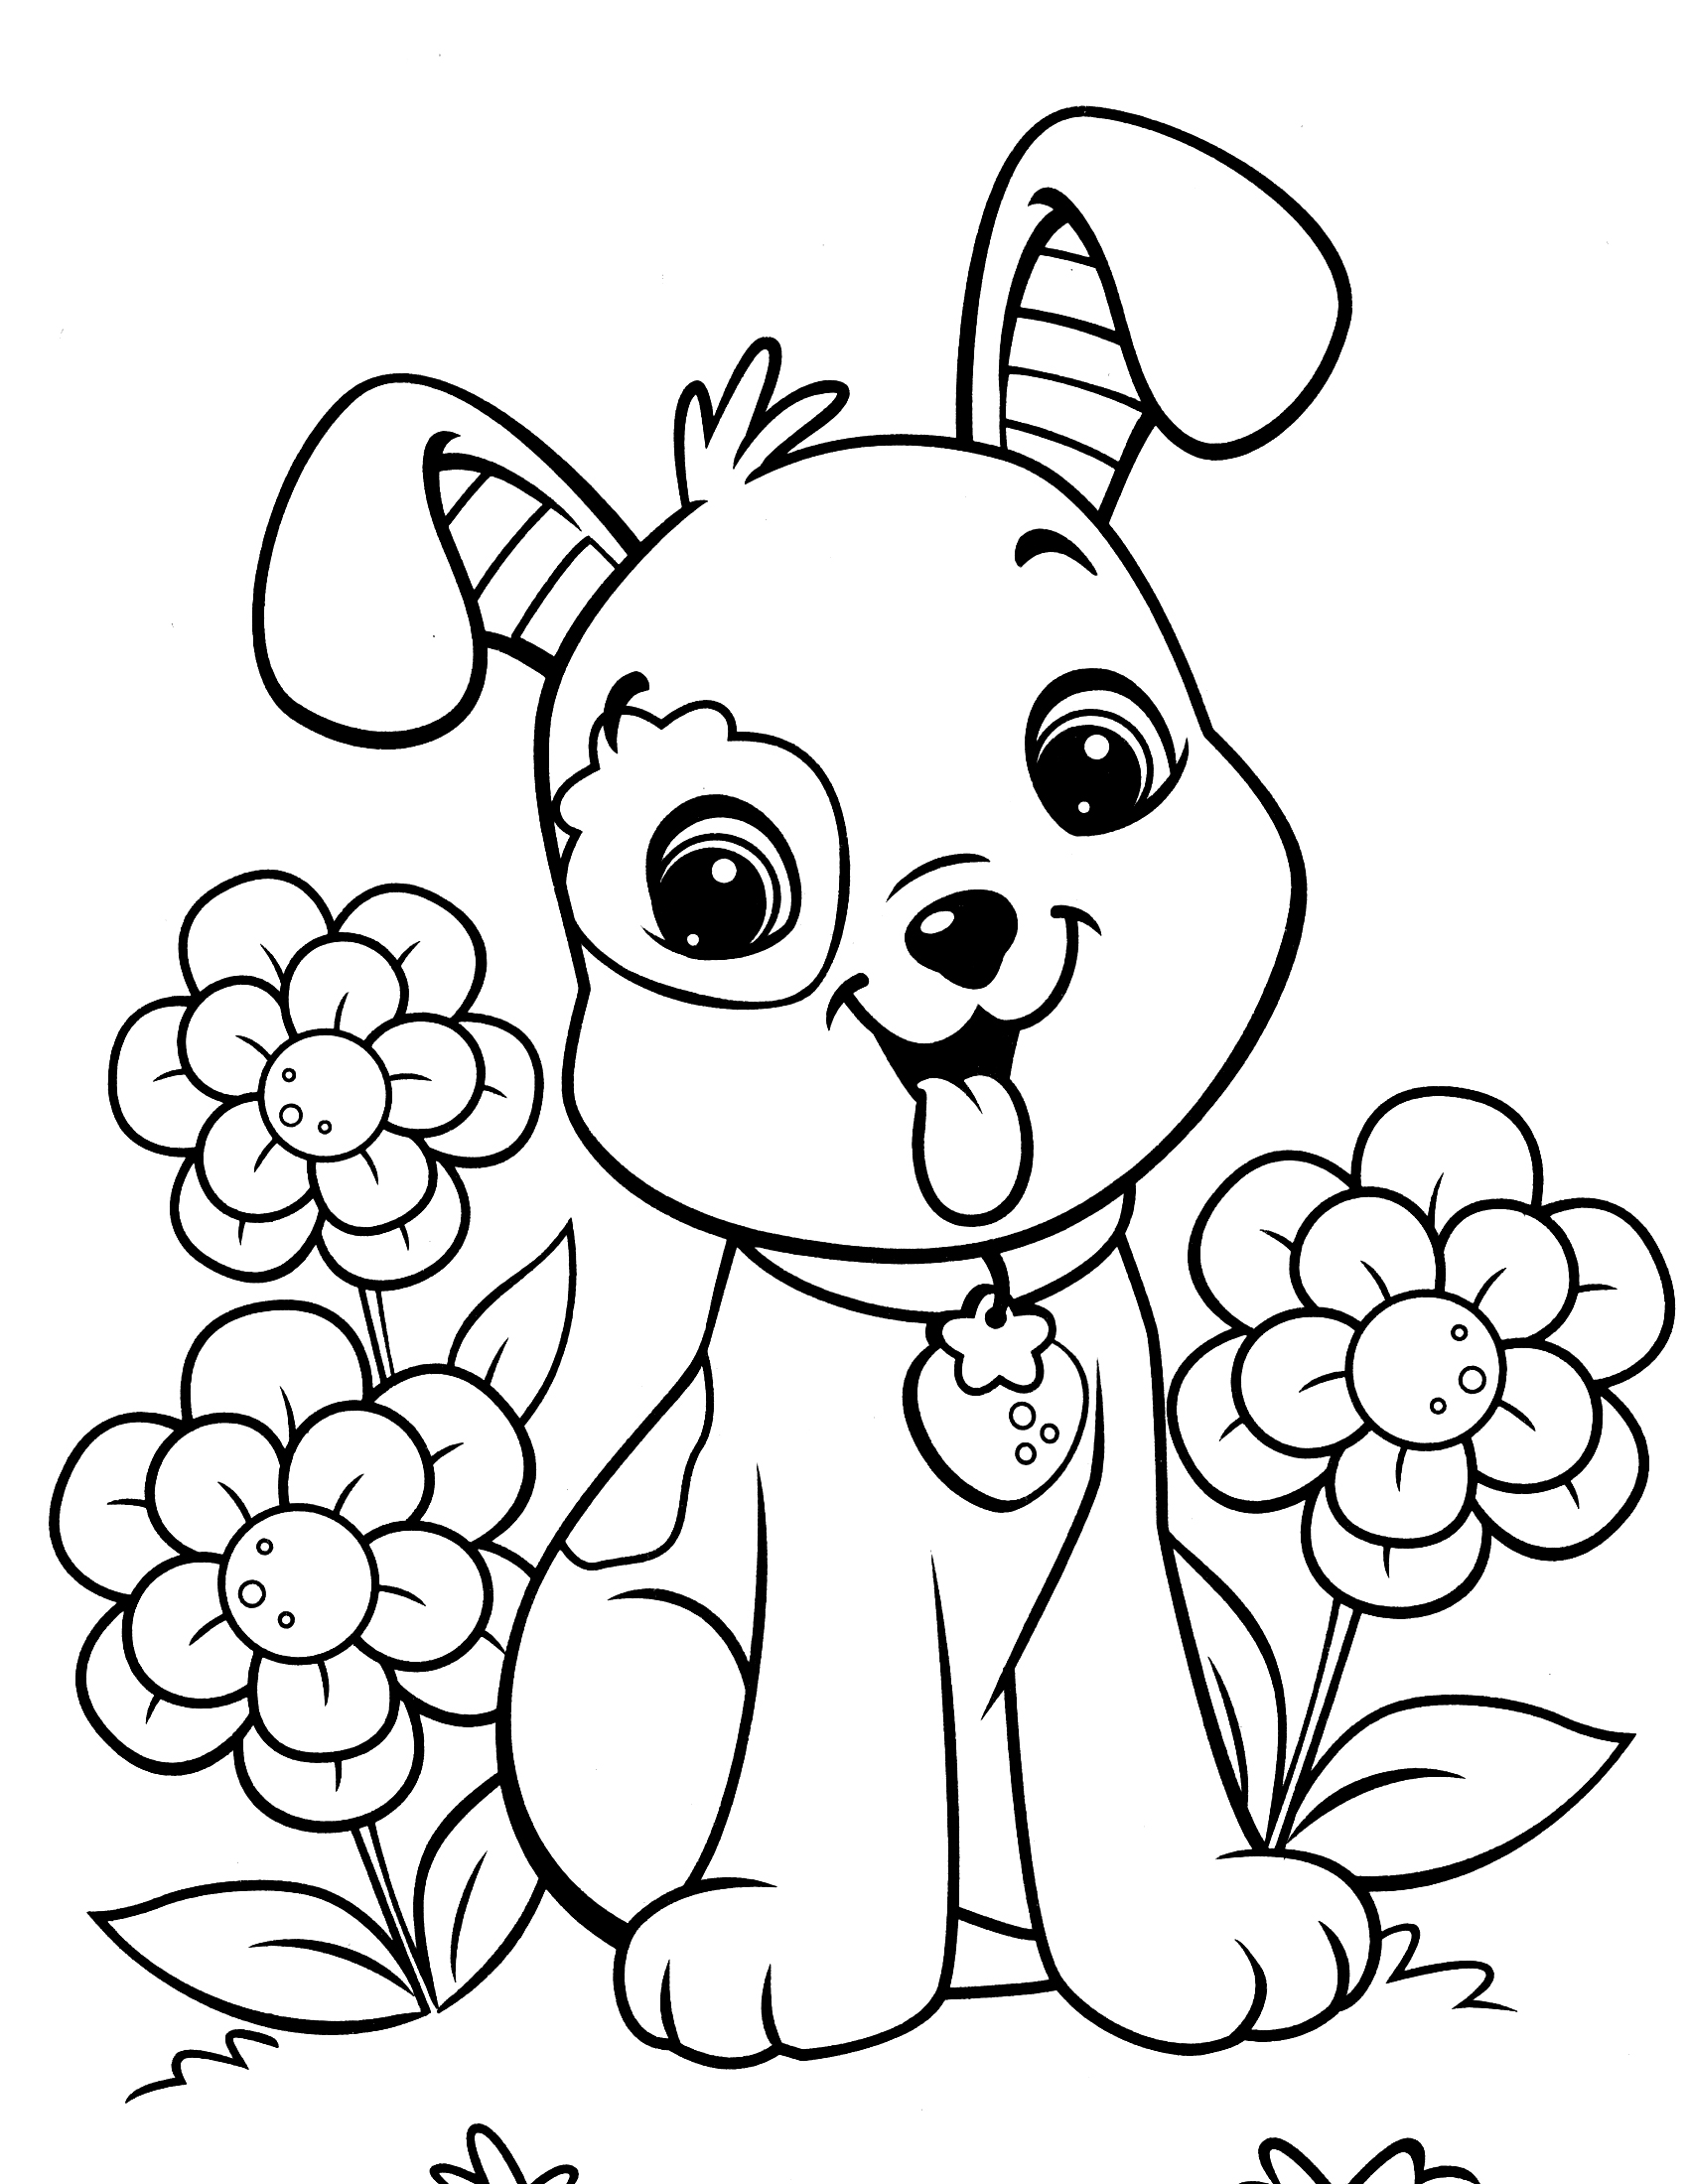 dogs colouring cute dog coloring pages to download and print for free dogs colouring